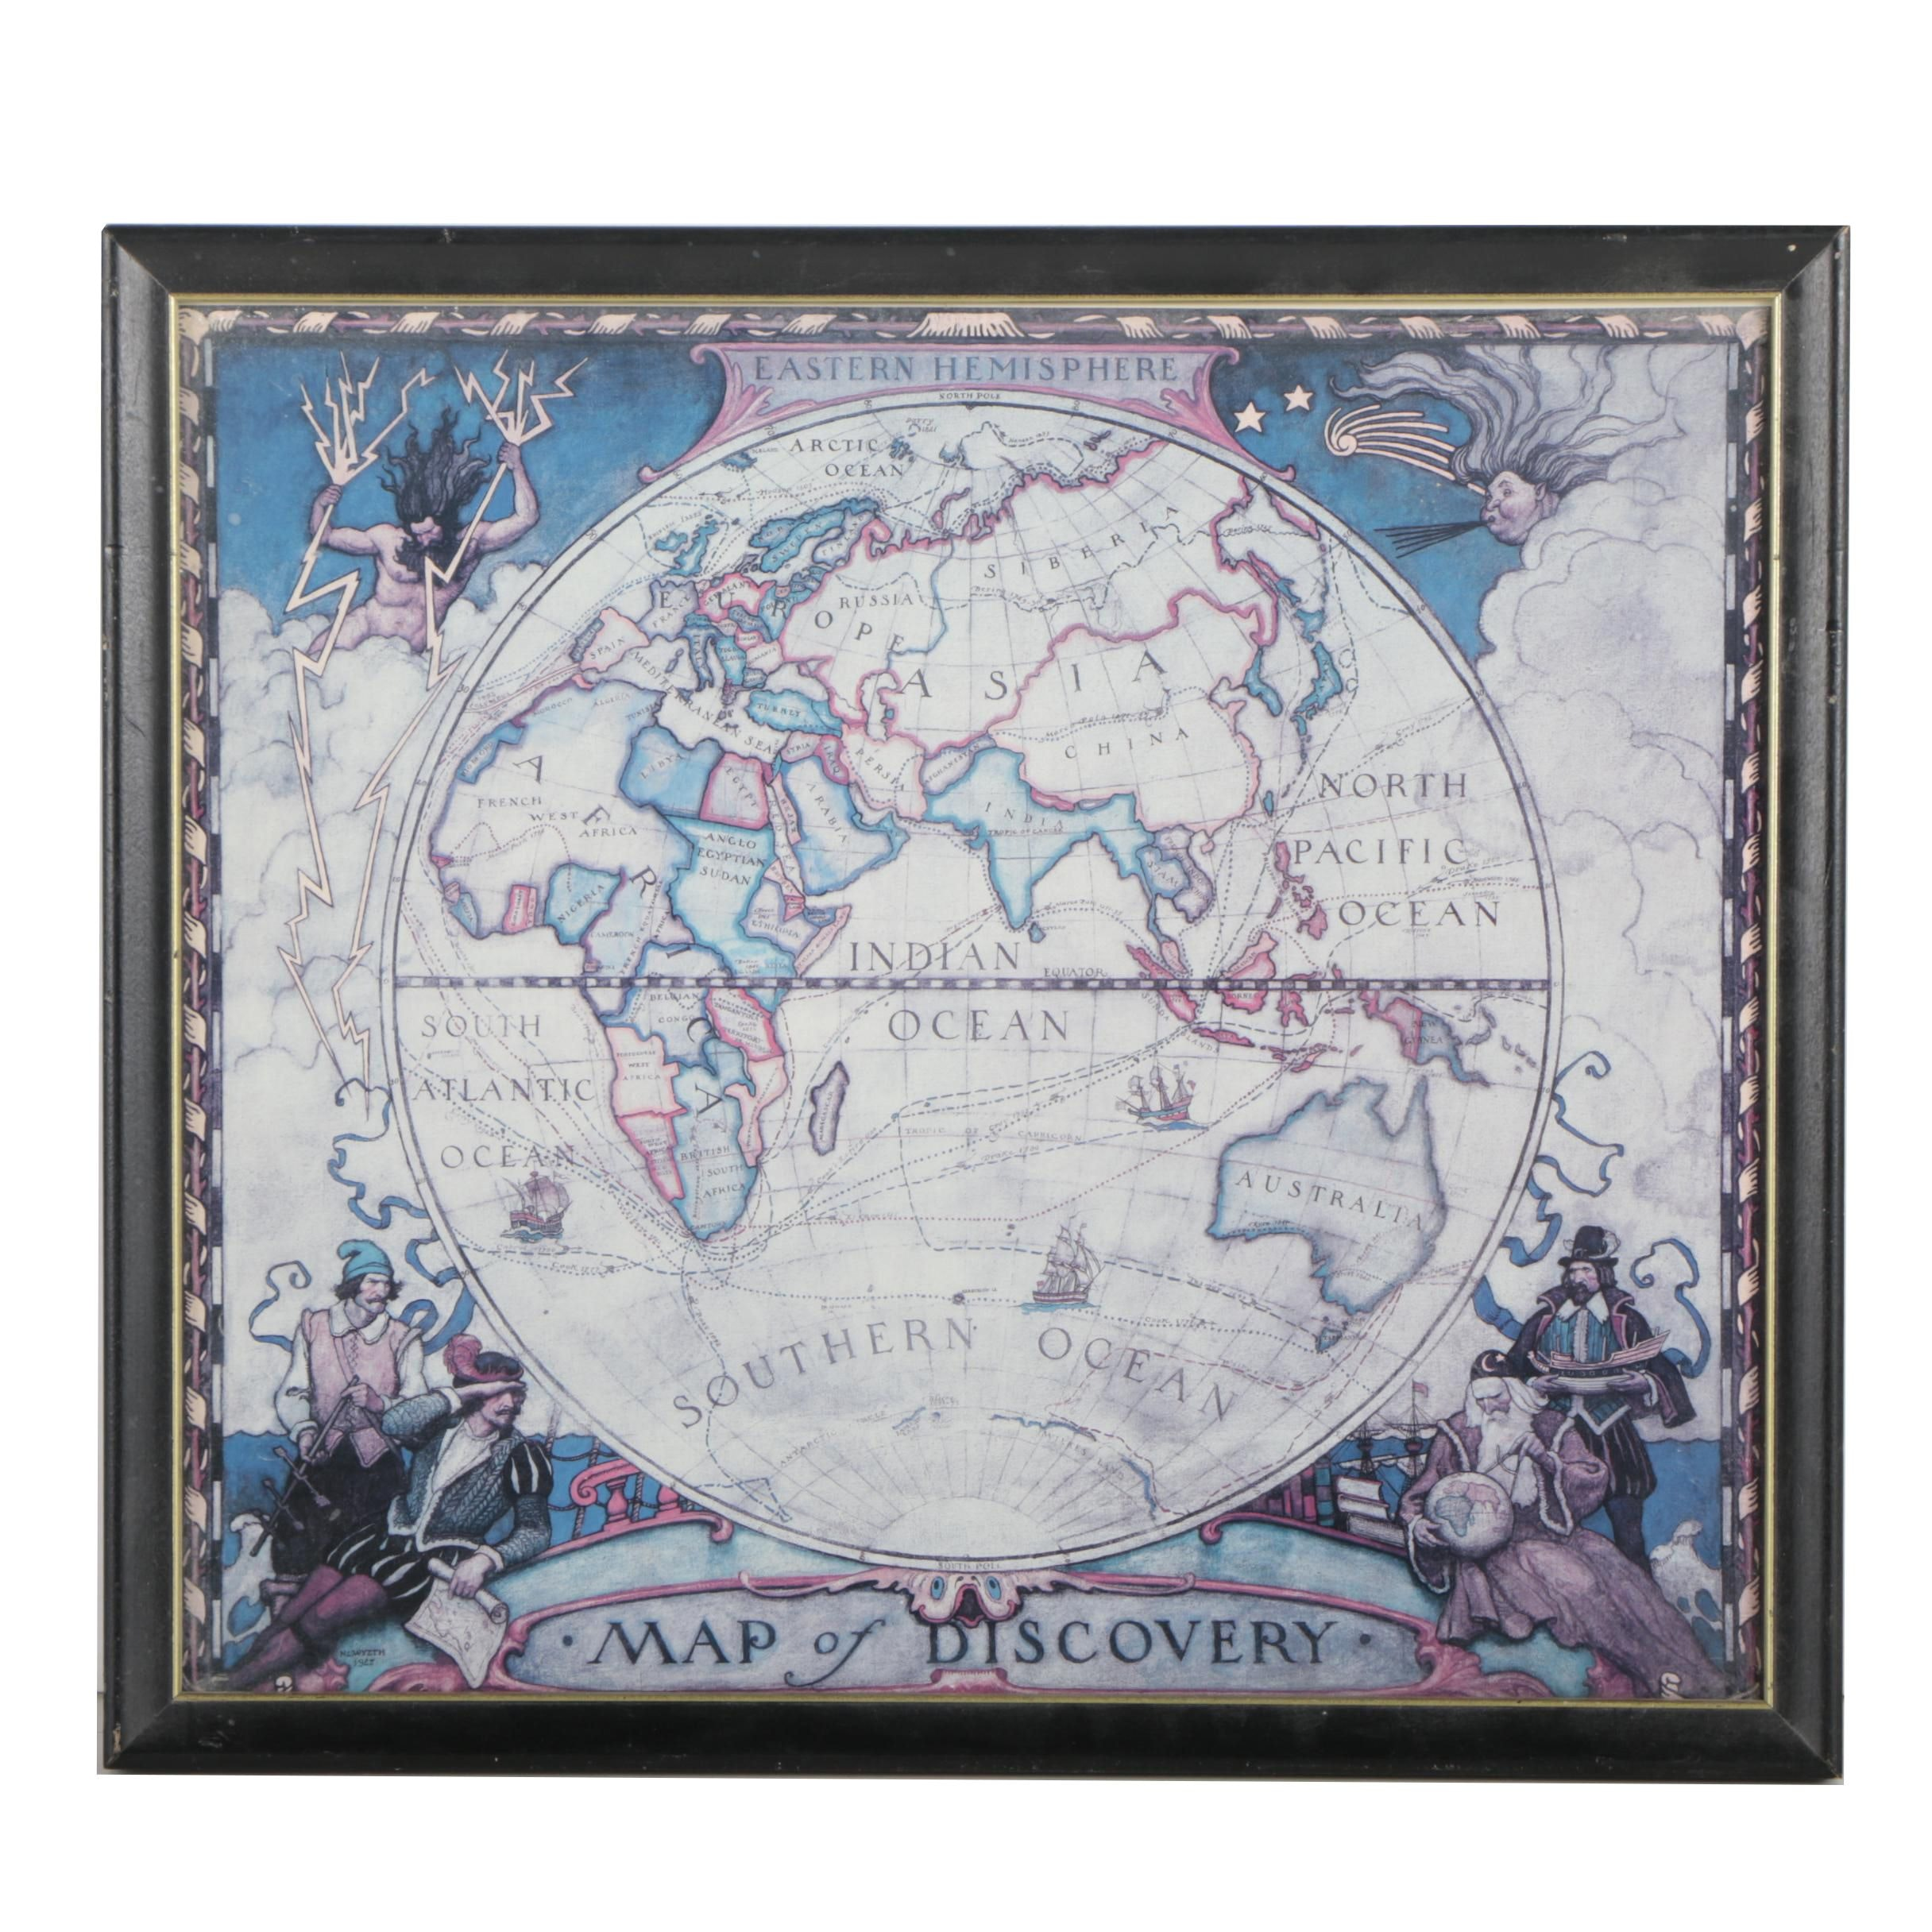 """Offset Lithograph after N.C. Wyeth """"Eastern Hemisphere, Map of Discovery"""""""